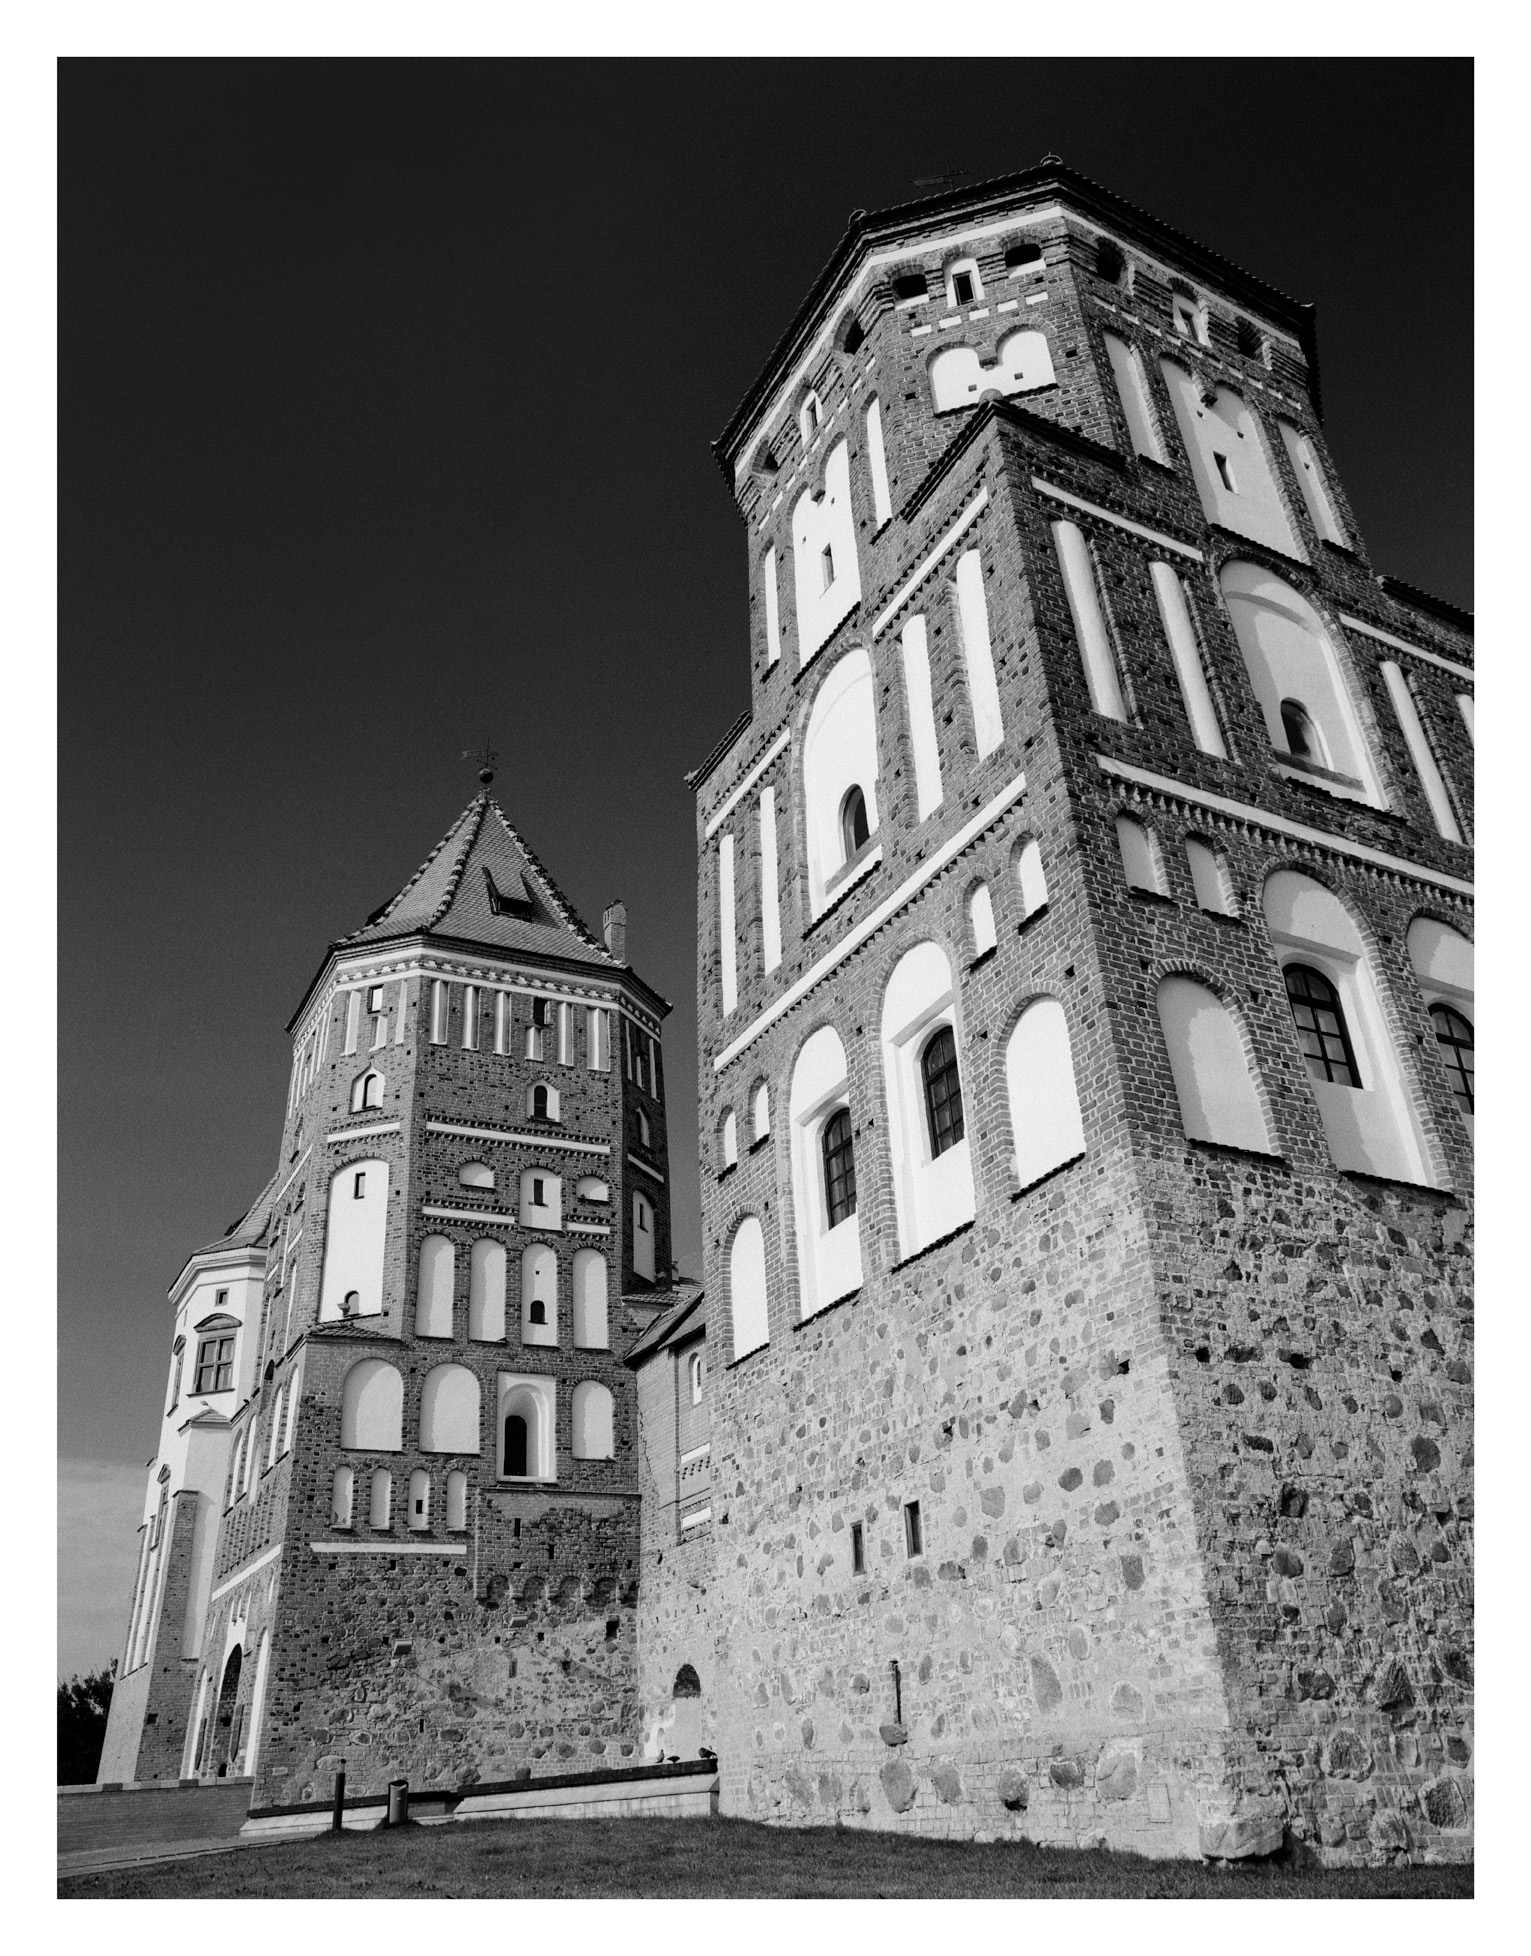 Towers of Mir Castle